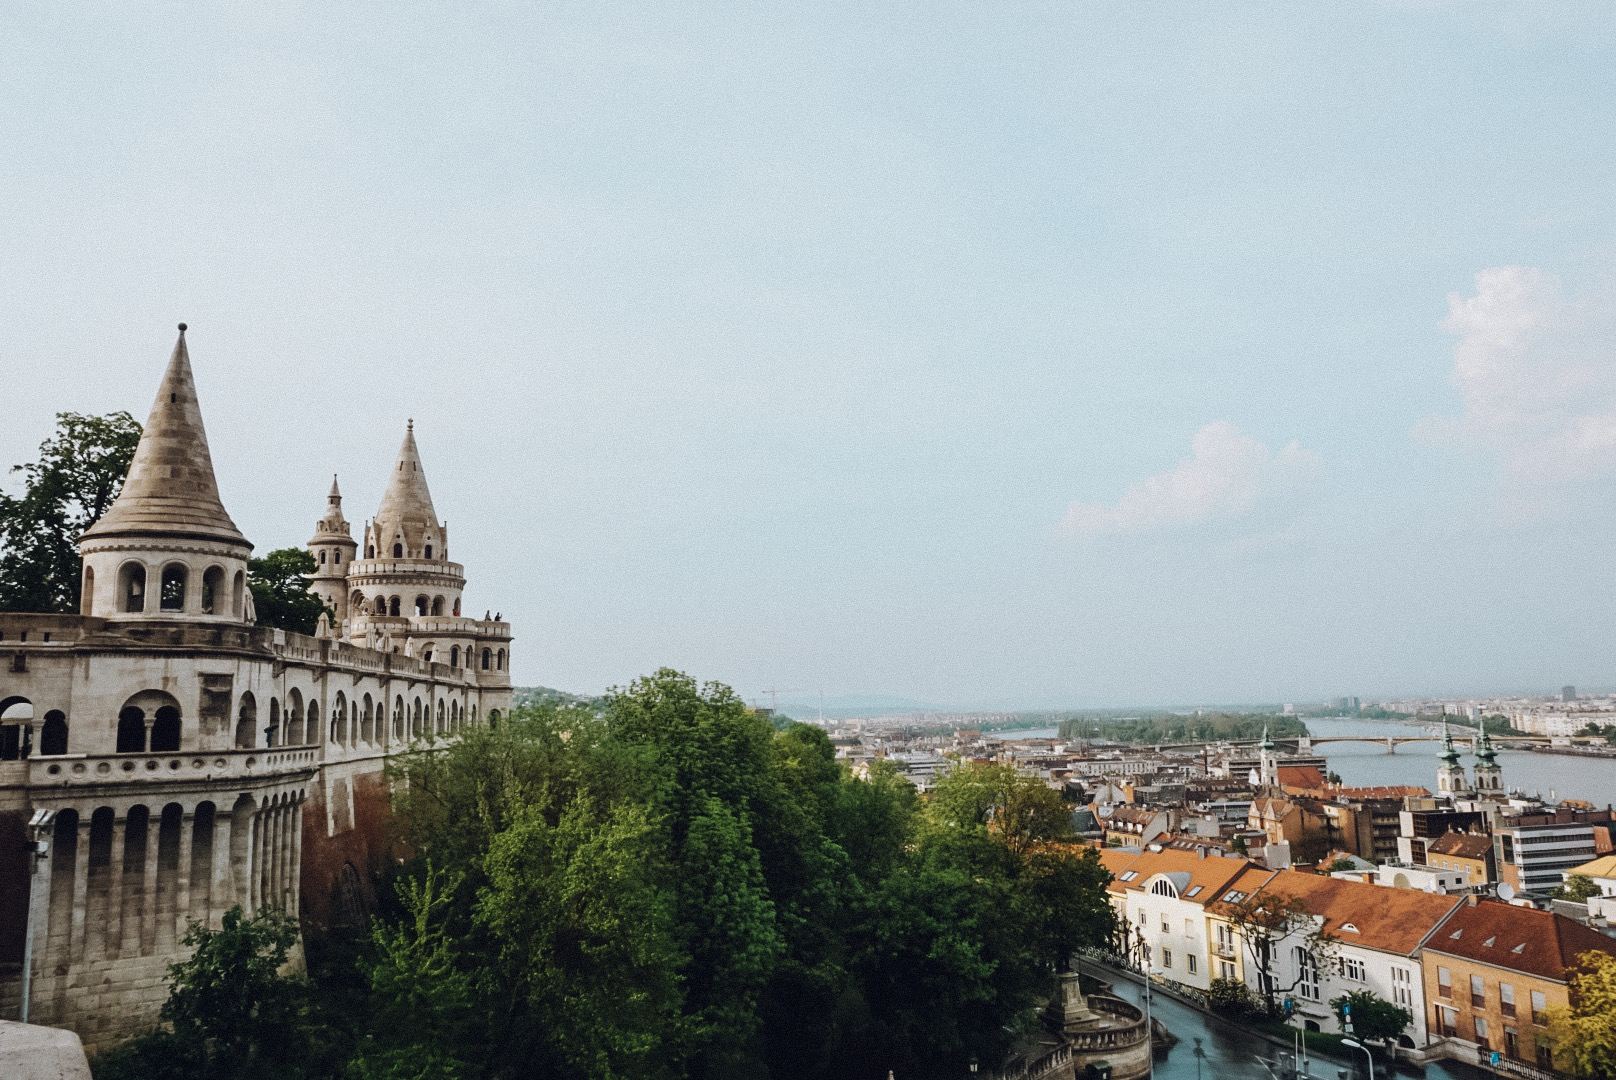 A viewpoint from  Fisherman's Bastion  on the Buda bank of the Danube. Over the bridge is the Pest side of the city.